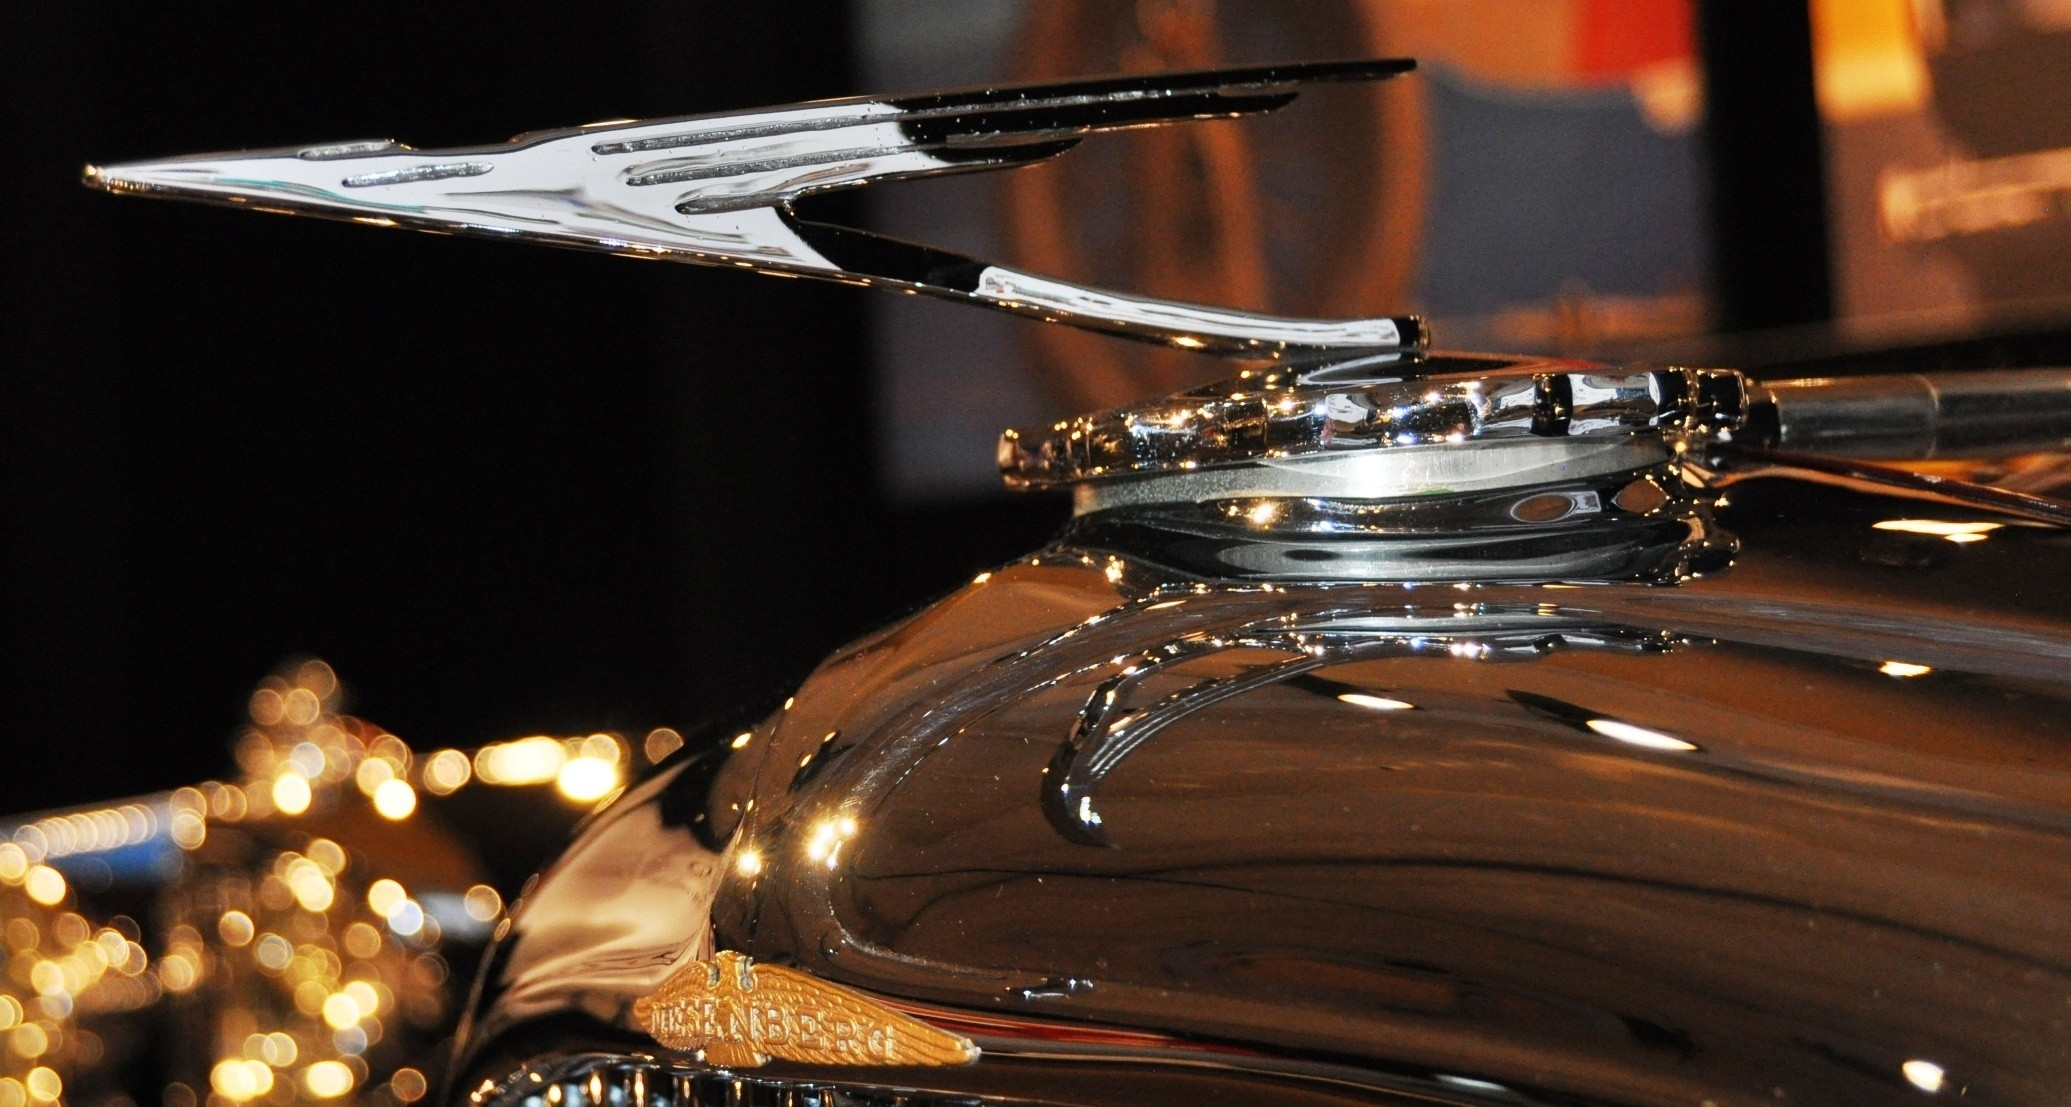 Coolest Vintage Hood Ornaments -- RM Auctions Amelia Island 2014 -- Pierce-Arrow, Cadillac, Stutz, Chrysler, Ford, Aston-Martin, Bentley and More 8